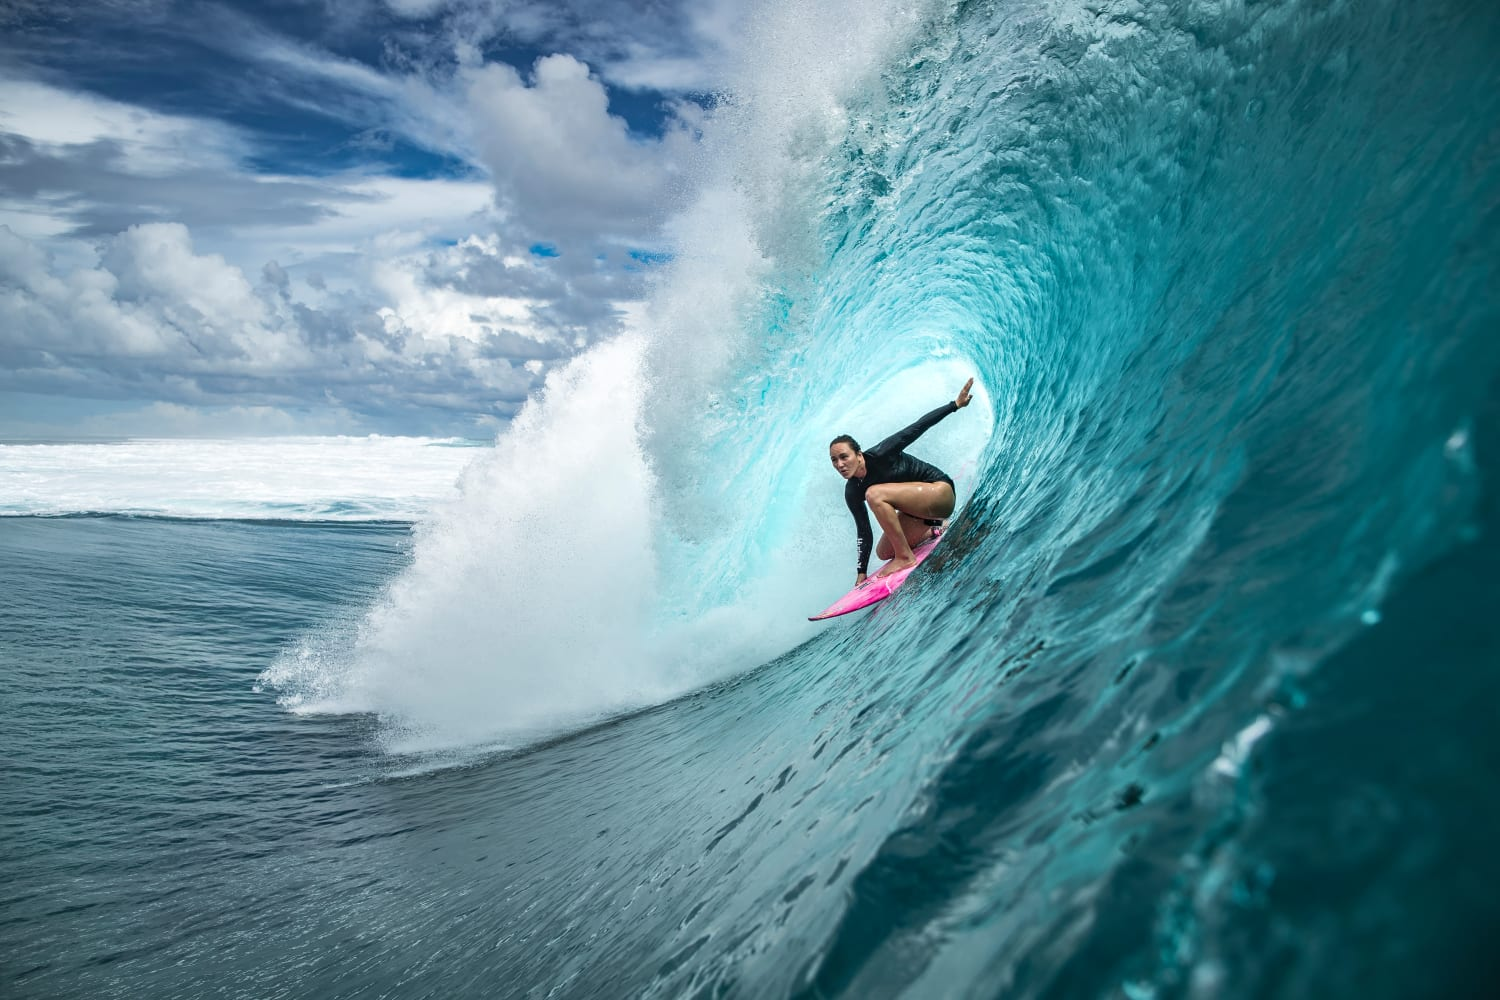 The dangers in surfing